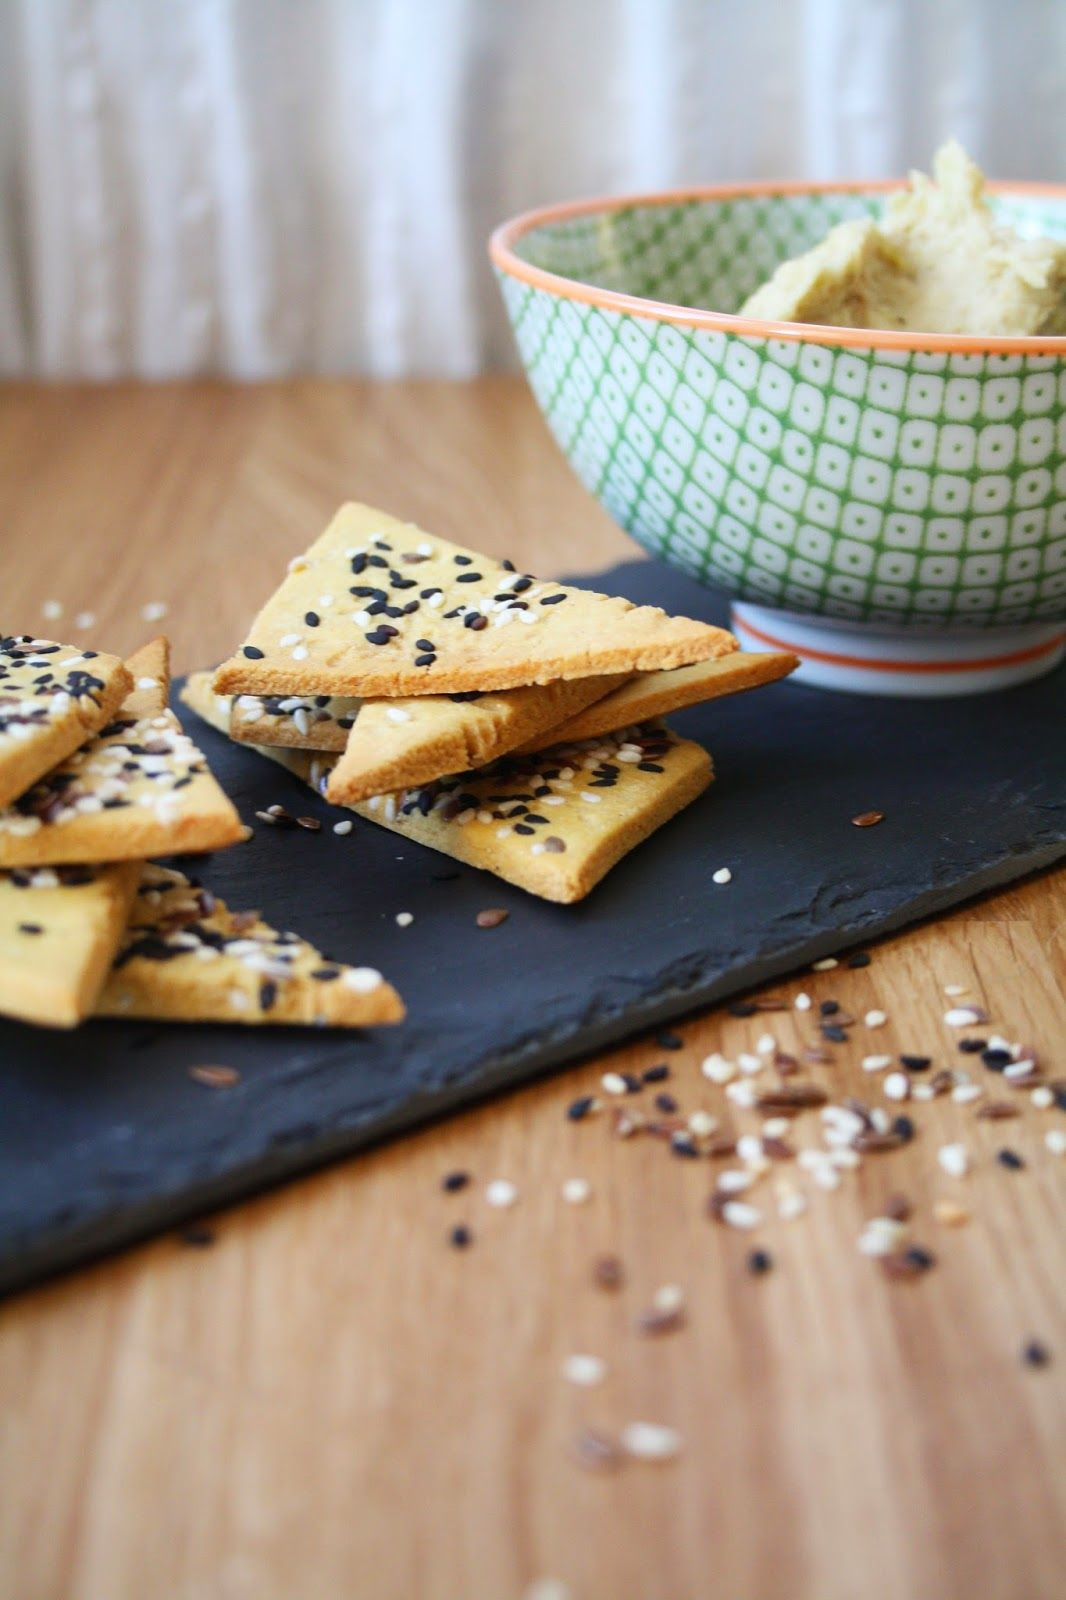 Sesame Sprinkled Chickpea Crackers with a Roasted Leek and White Bean Dip